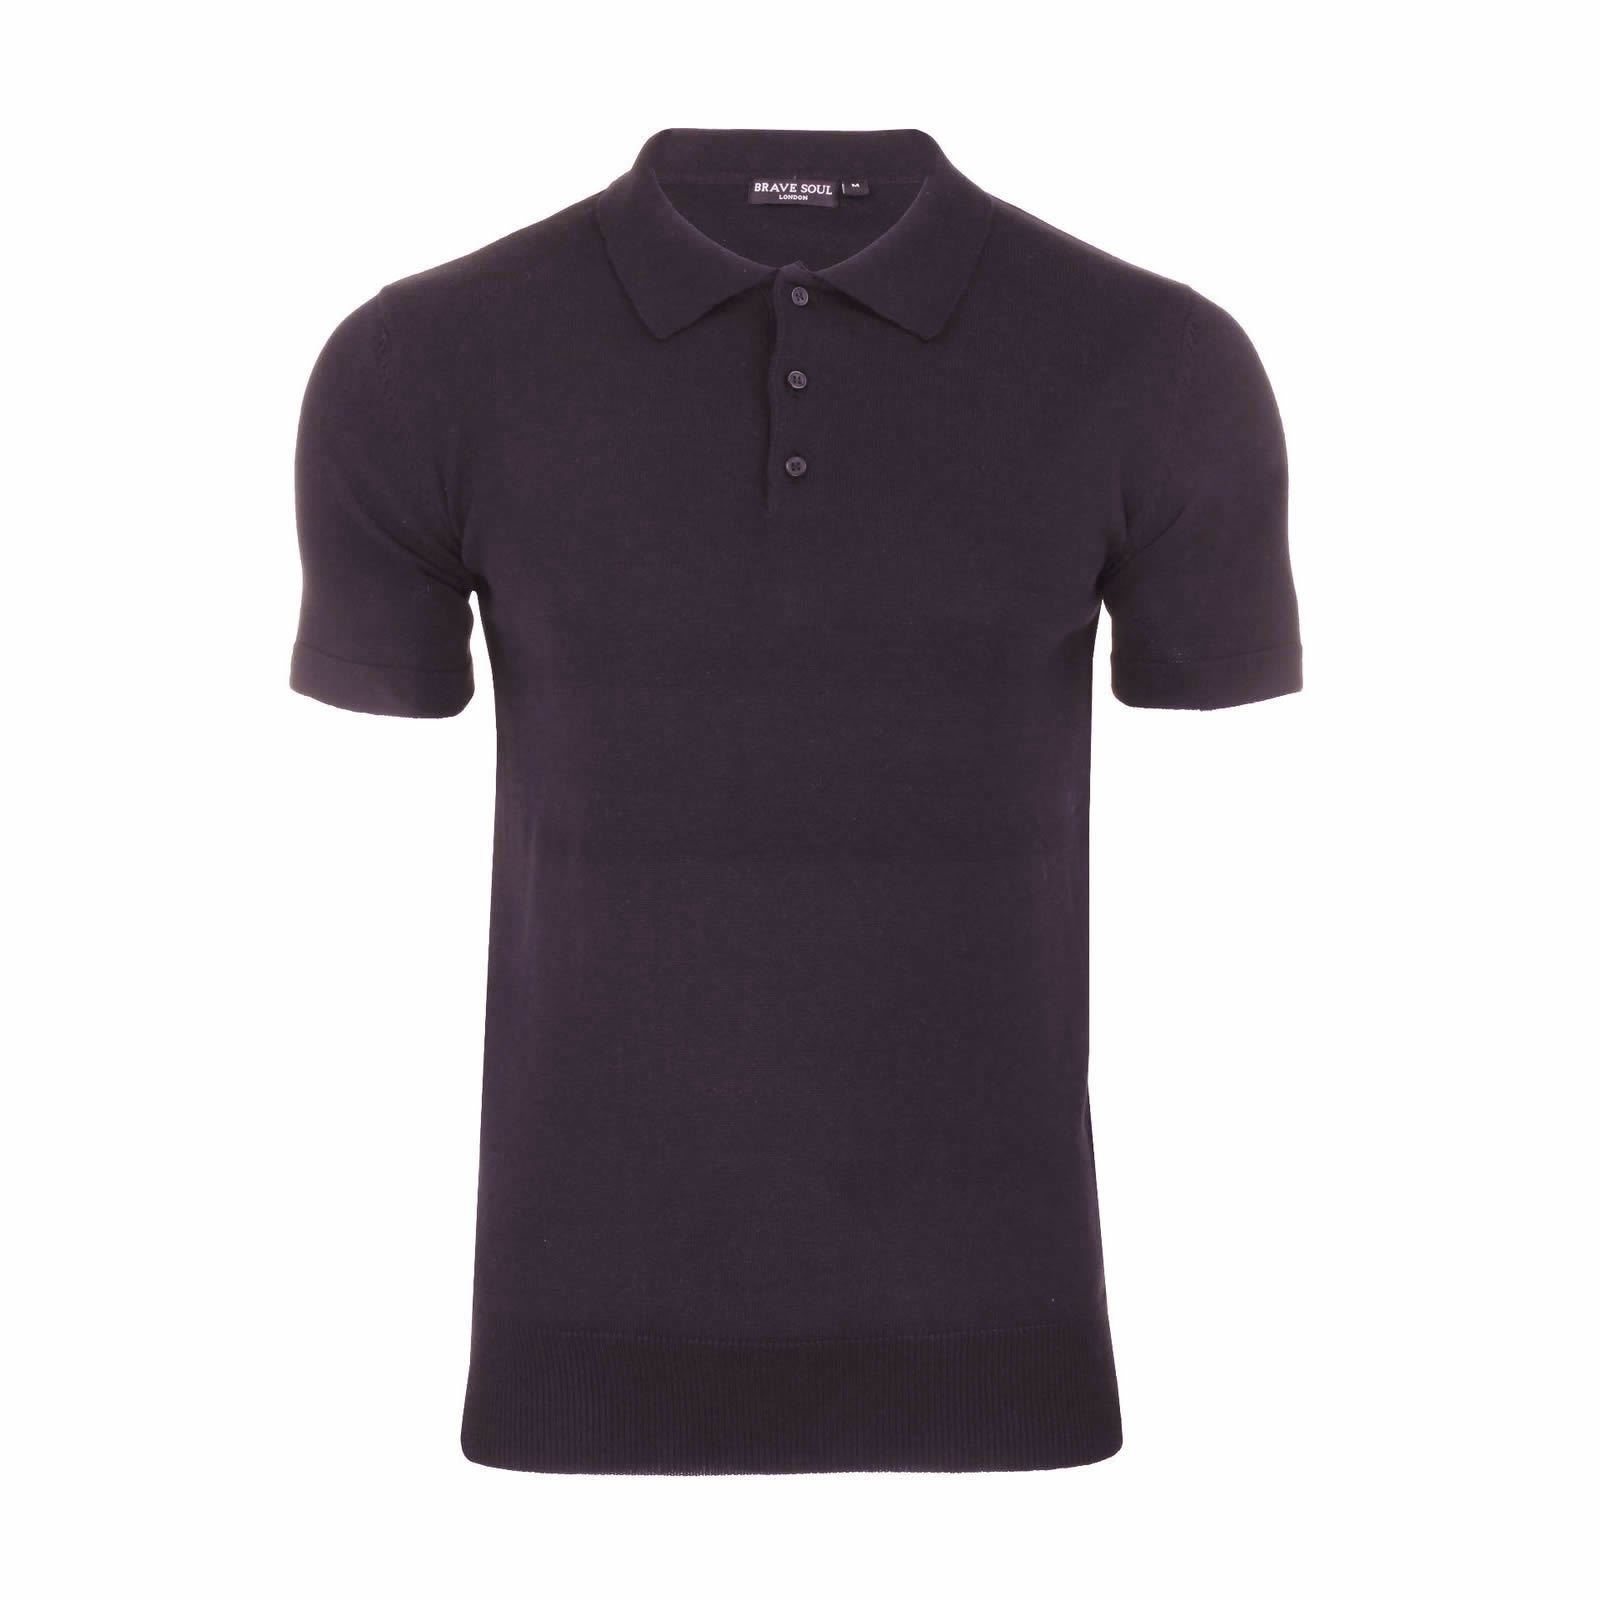 Homme-Tricot-Polo-Brave-Soul-Columbus-a-col-manches-courtes-Pull-T-Shirt miniature 14